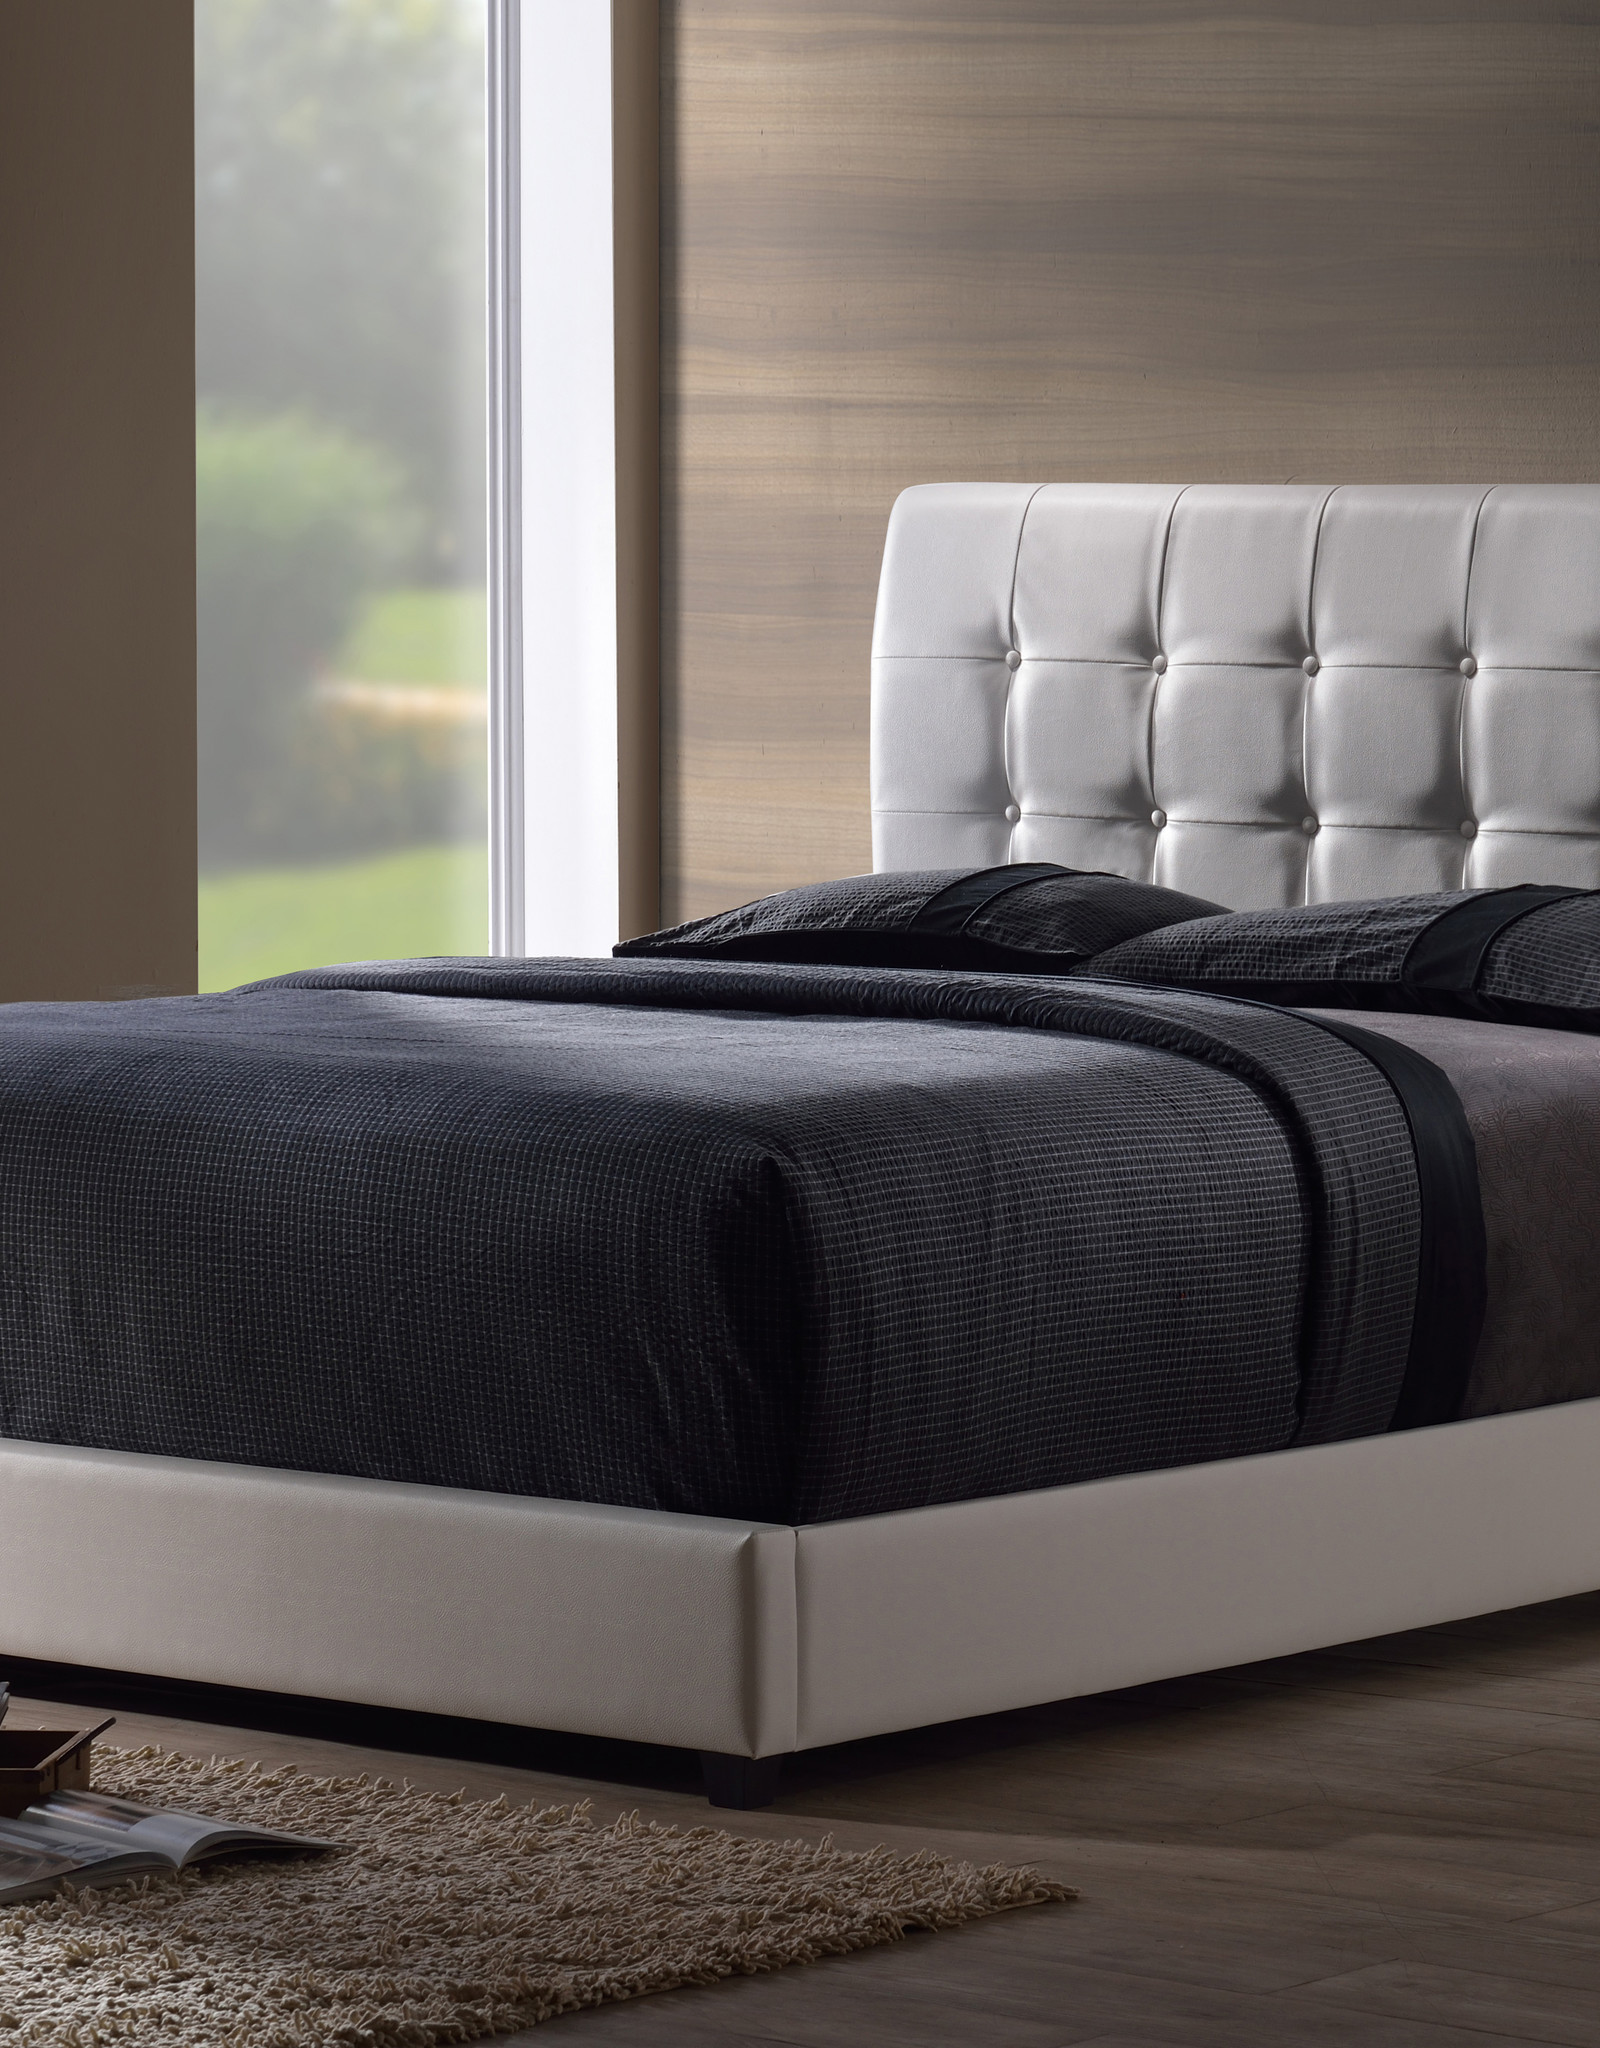 Lusso Bed (WHITE) (Includes headboard, footboard, and rails)